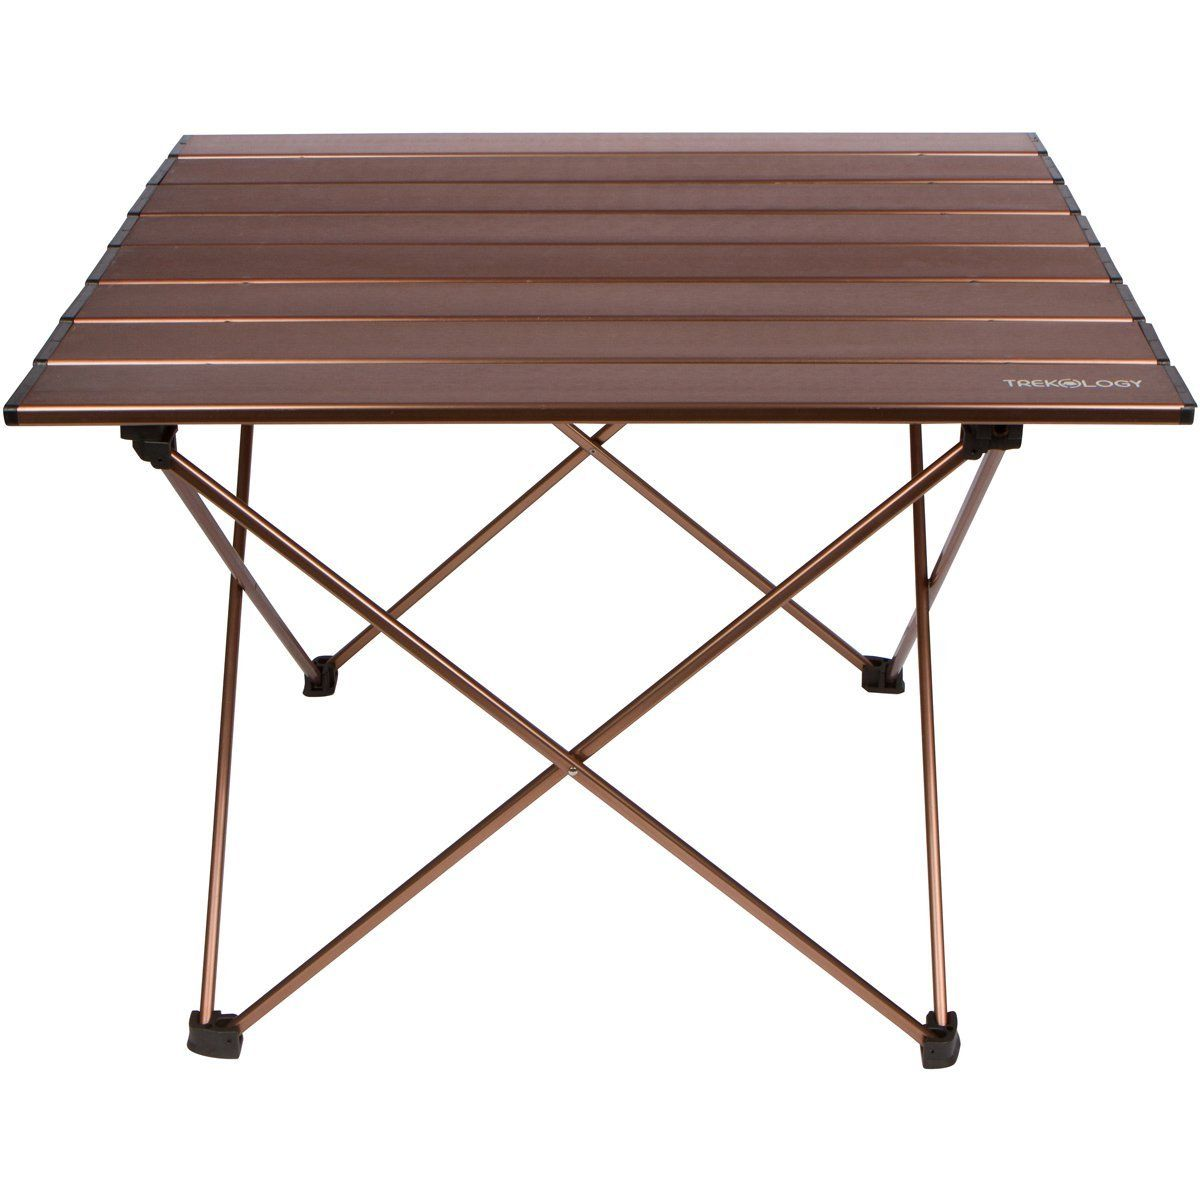 Trekology Portable Camping Table With Aluminum Top Hard Topped Folding In A Bag For Picnic Camp Beach Useful Dining Cutting